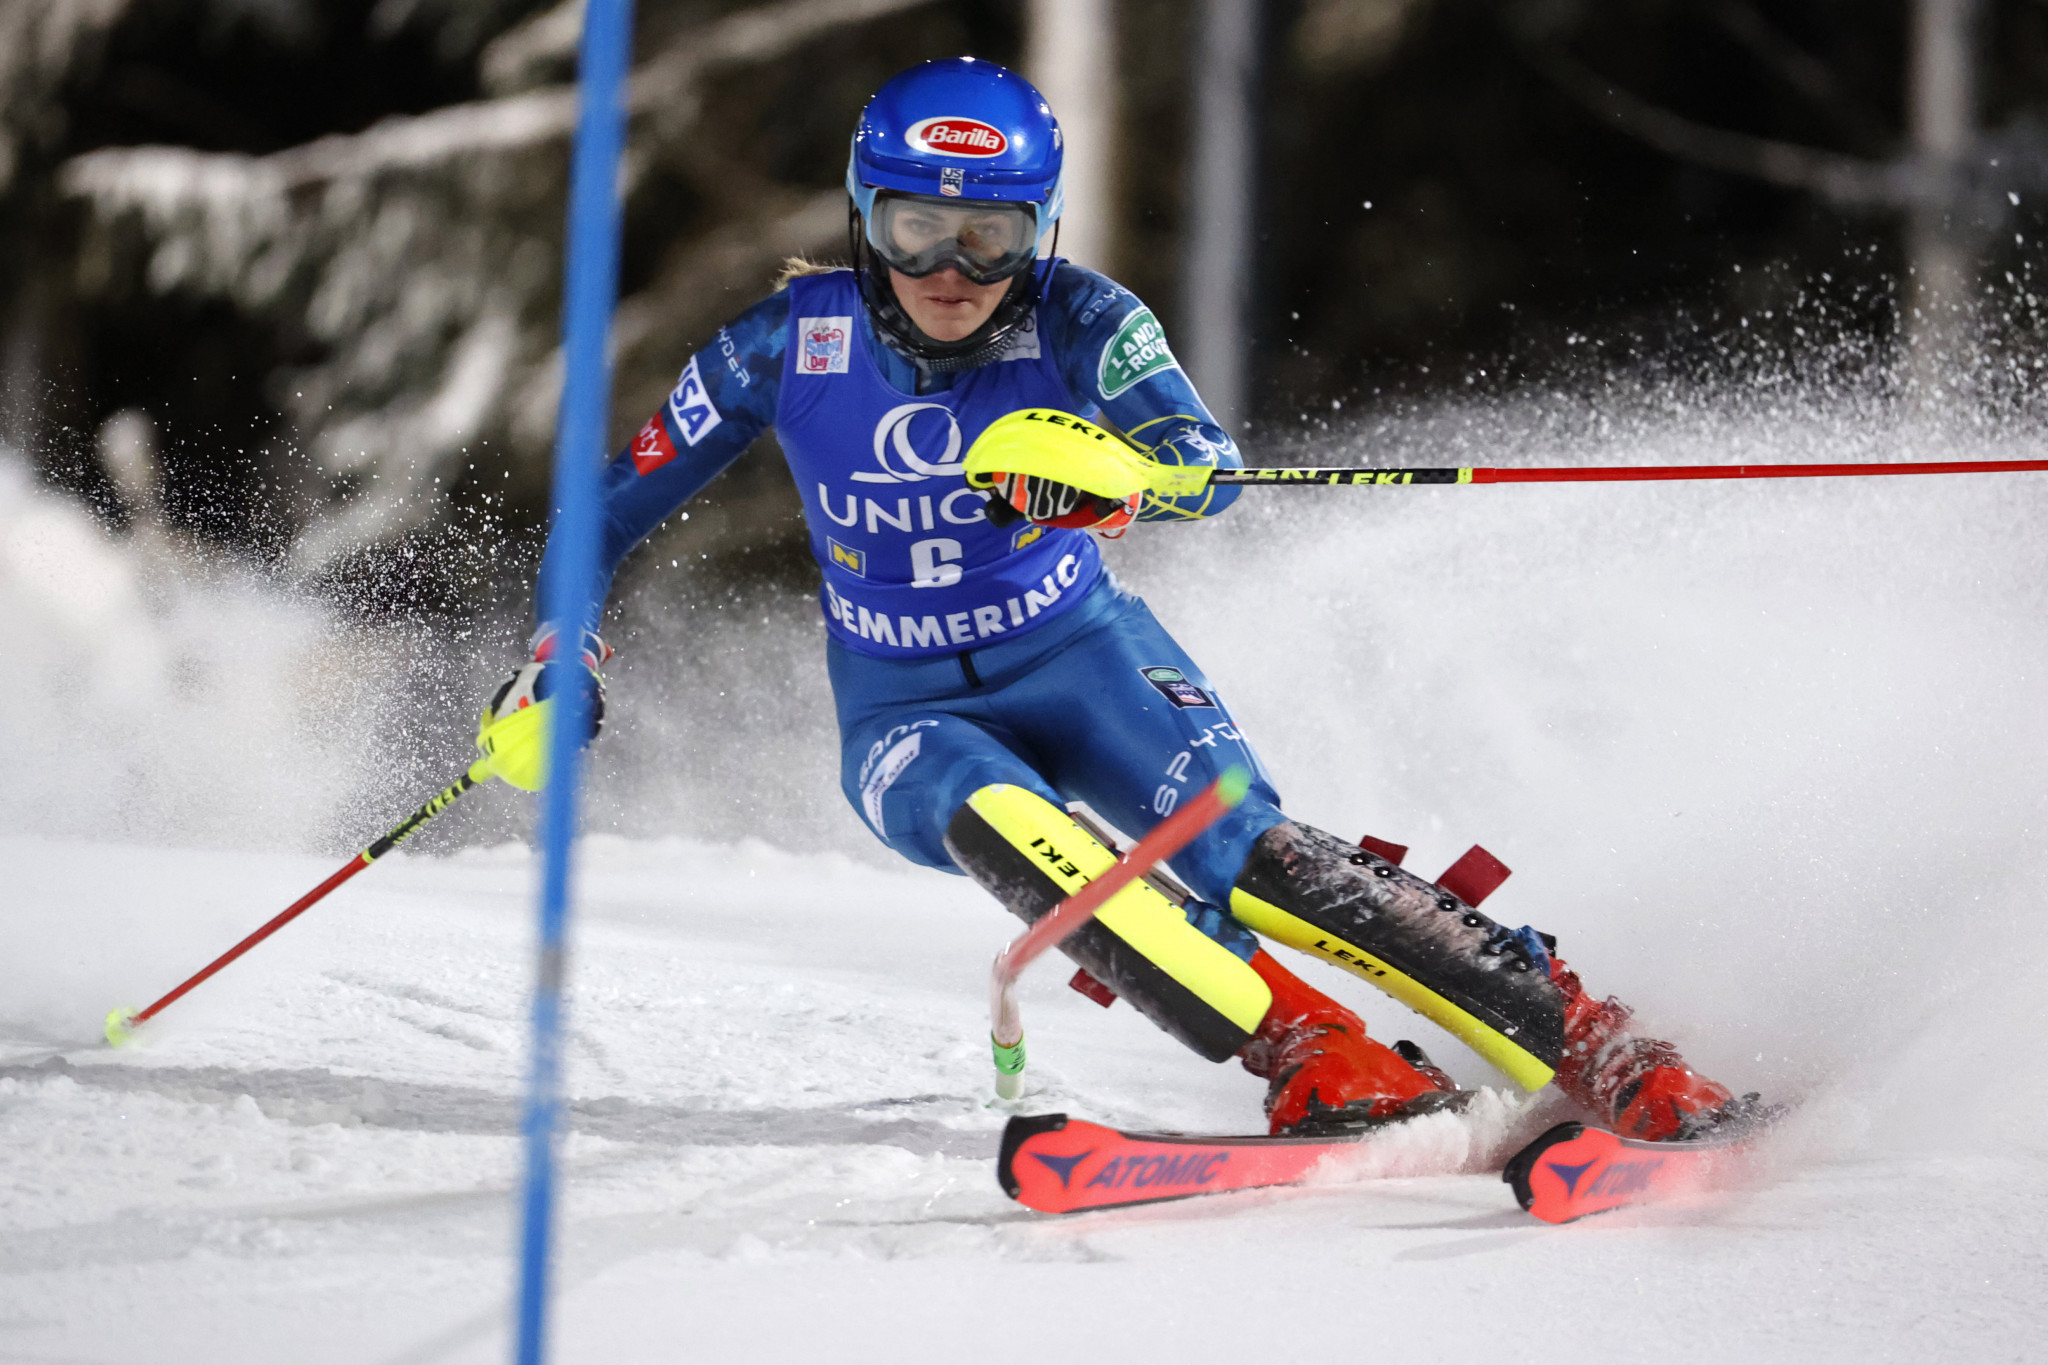 Mikaela Shiffrin praised organisers in Zagreb for ensuring competition could take place ©Getty Images